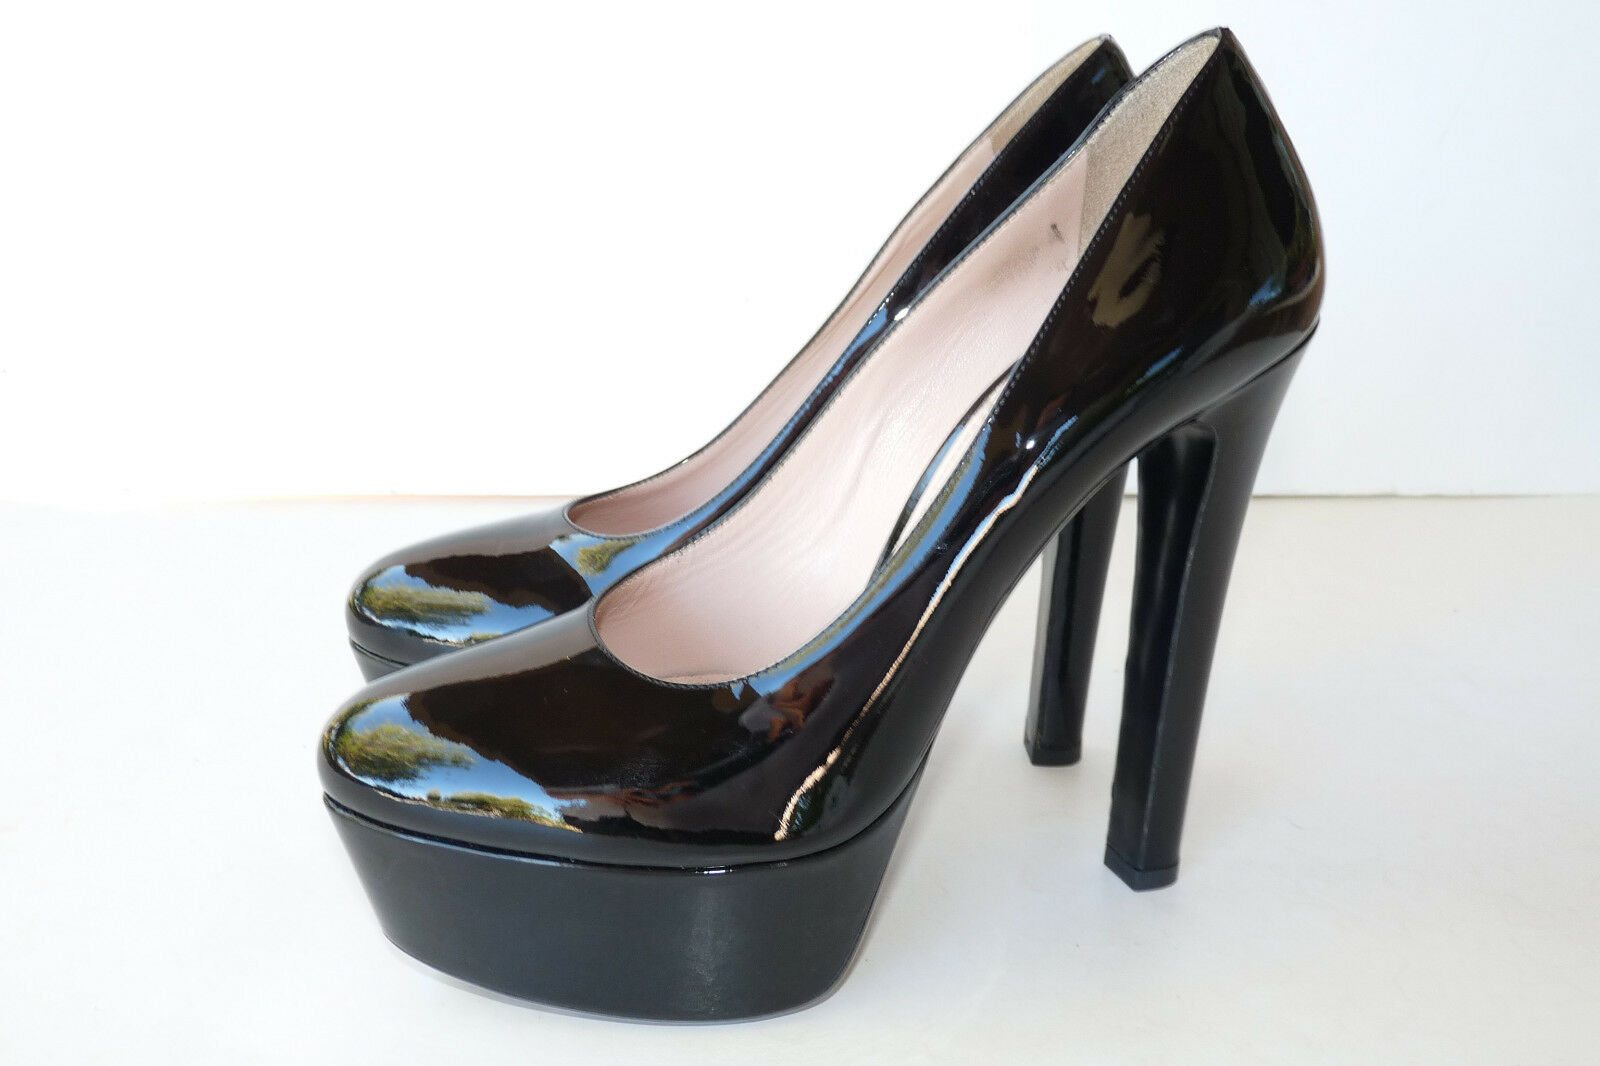 Authentic Miu Miu Black Patent Leather Platform Classic Pump Heel shoes Sz 9 39